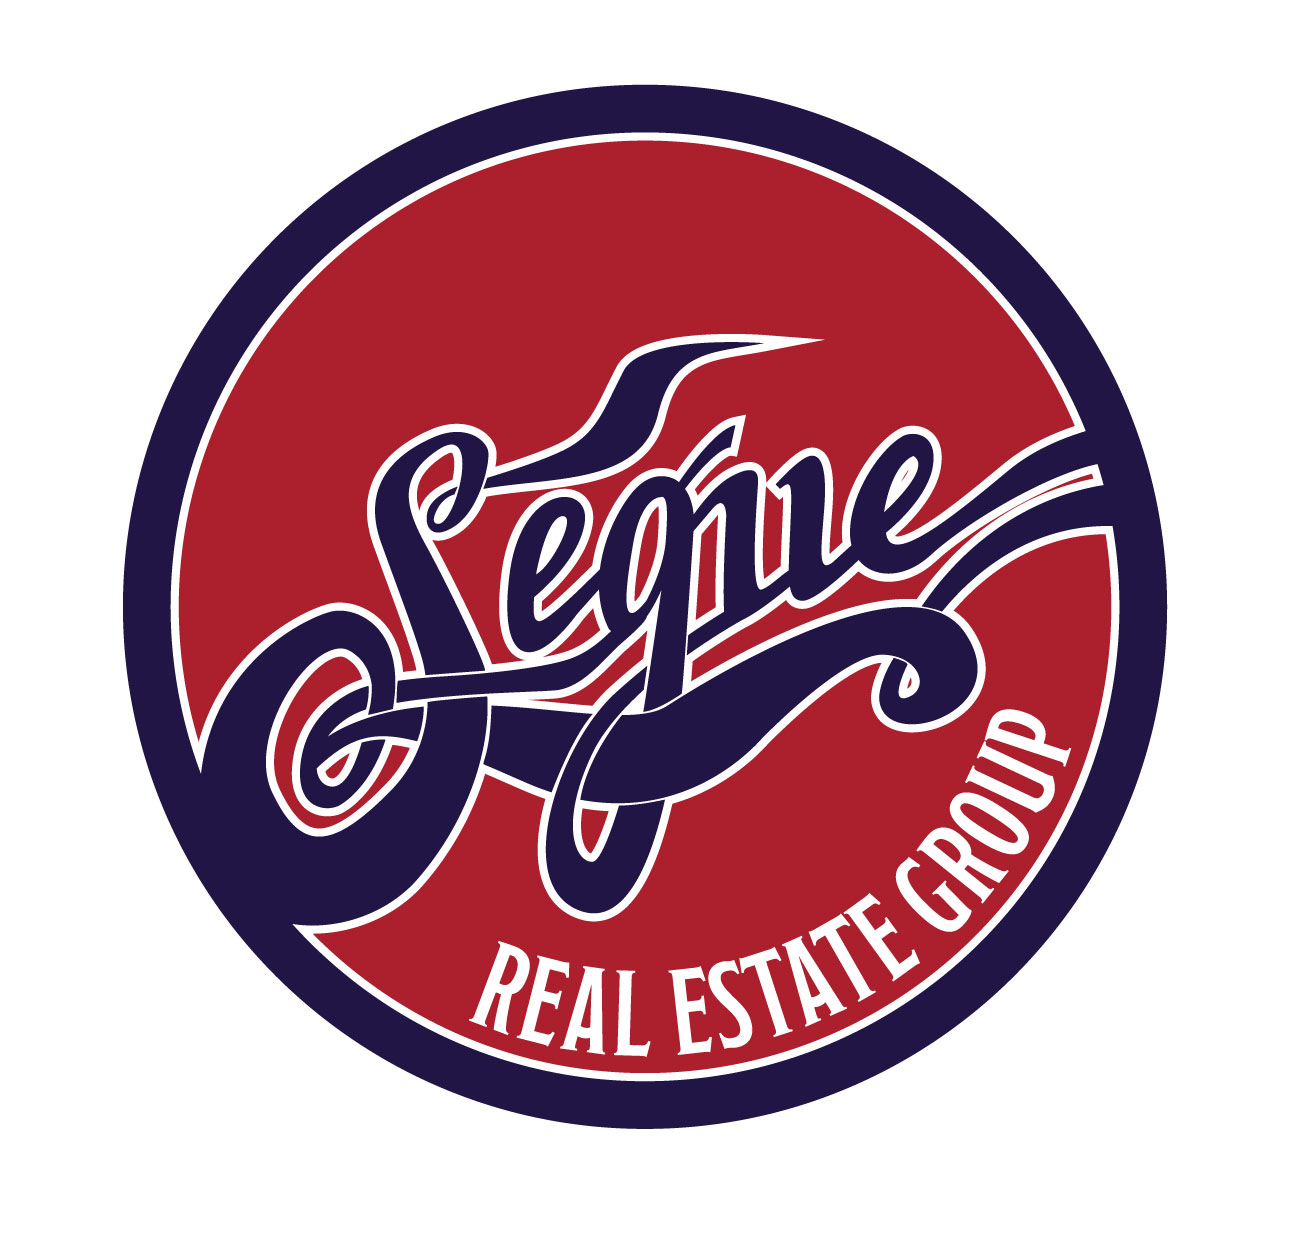 Segue Real Estate Group